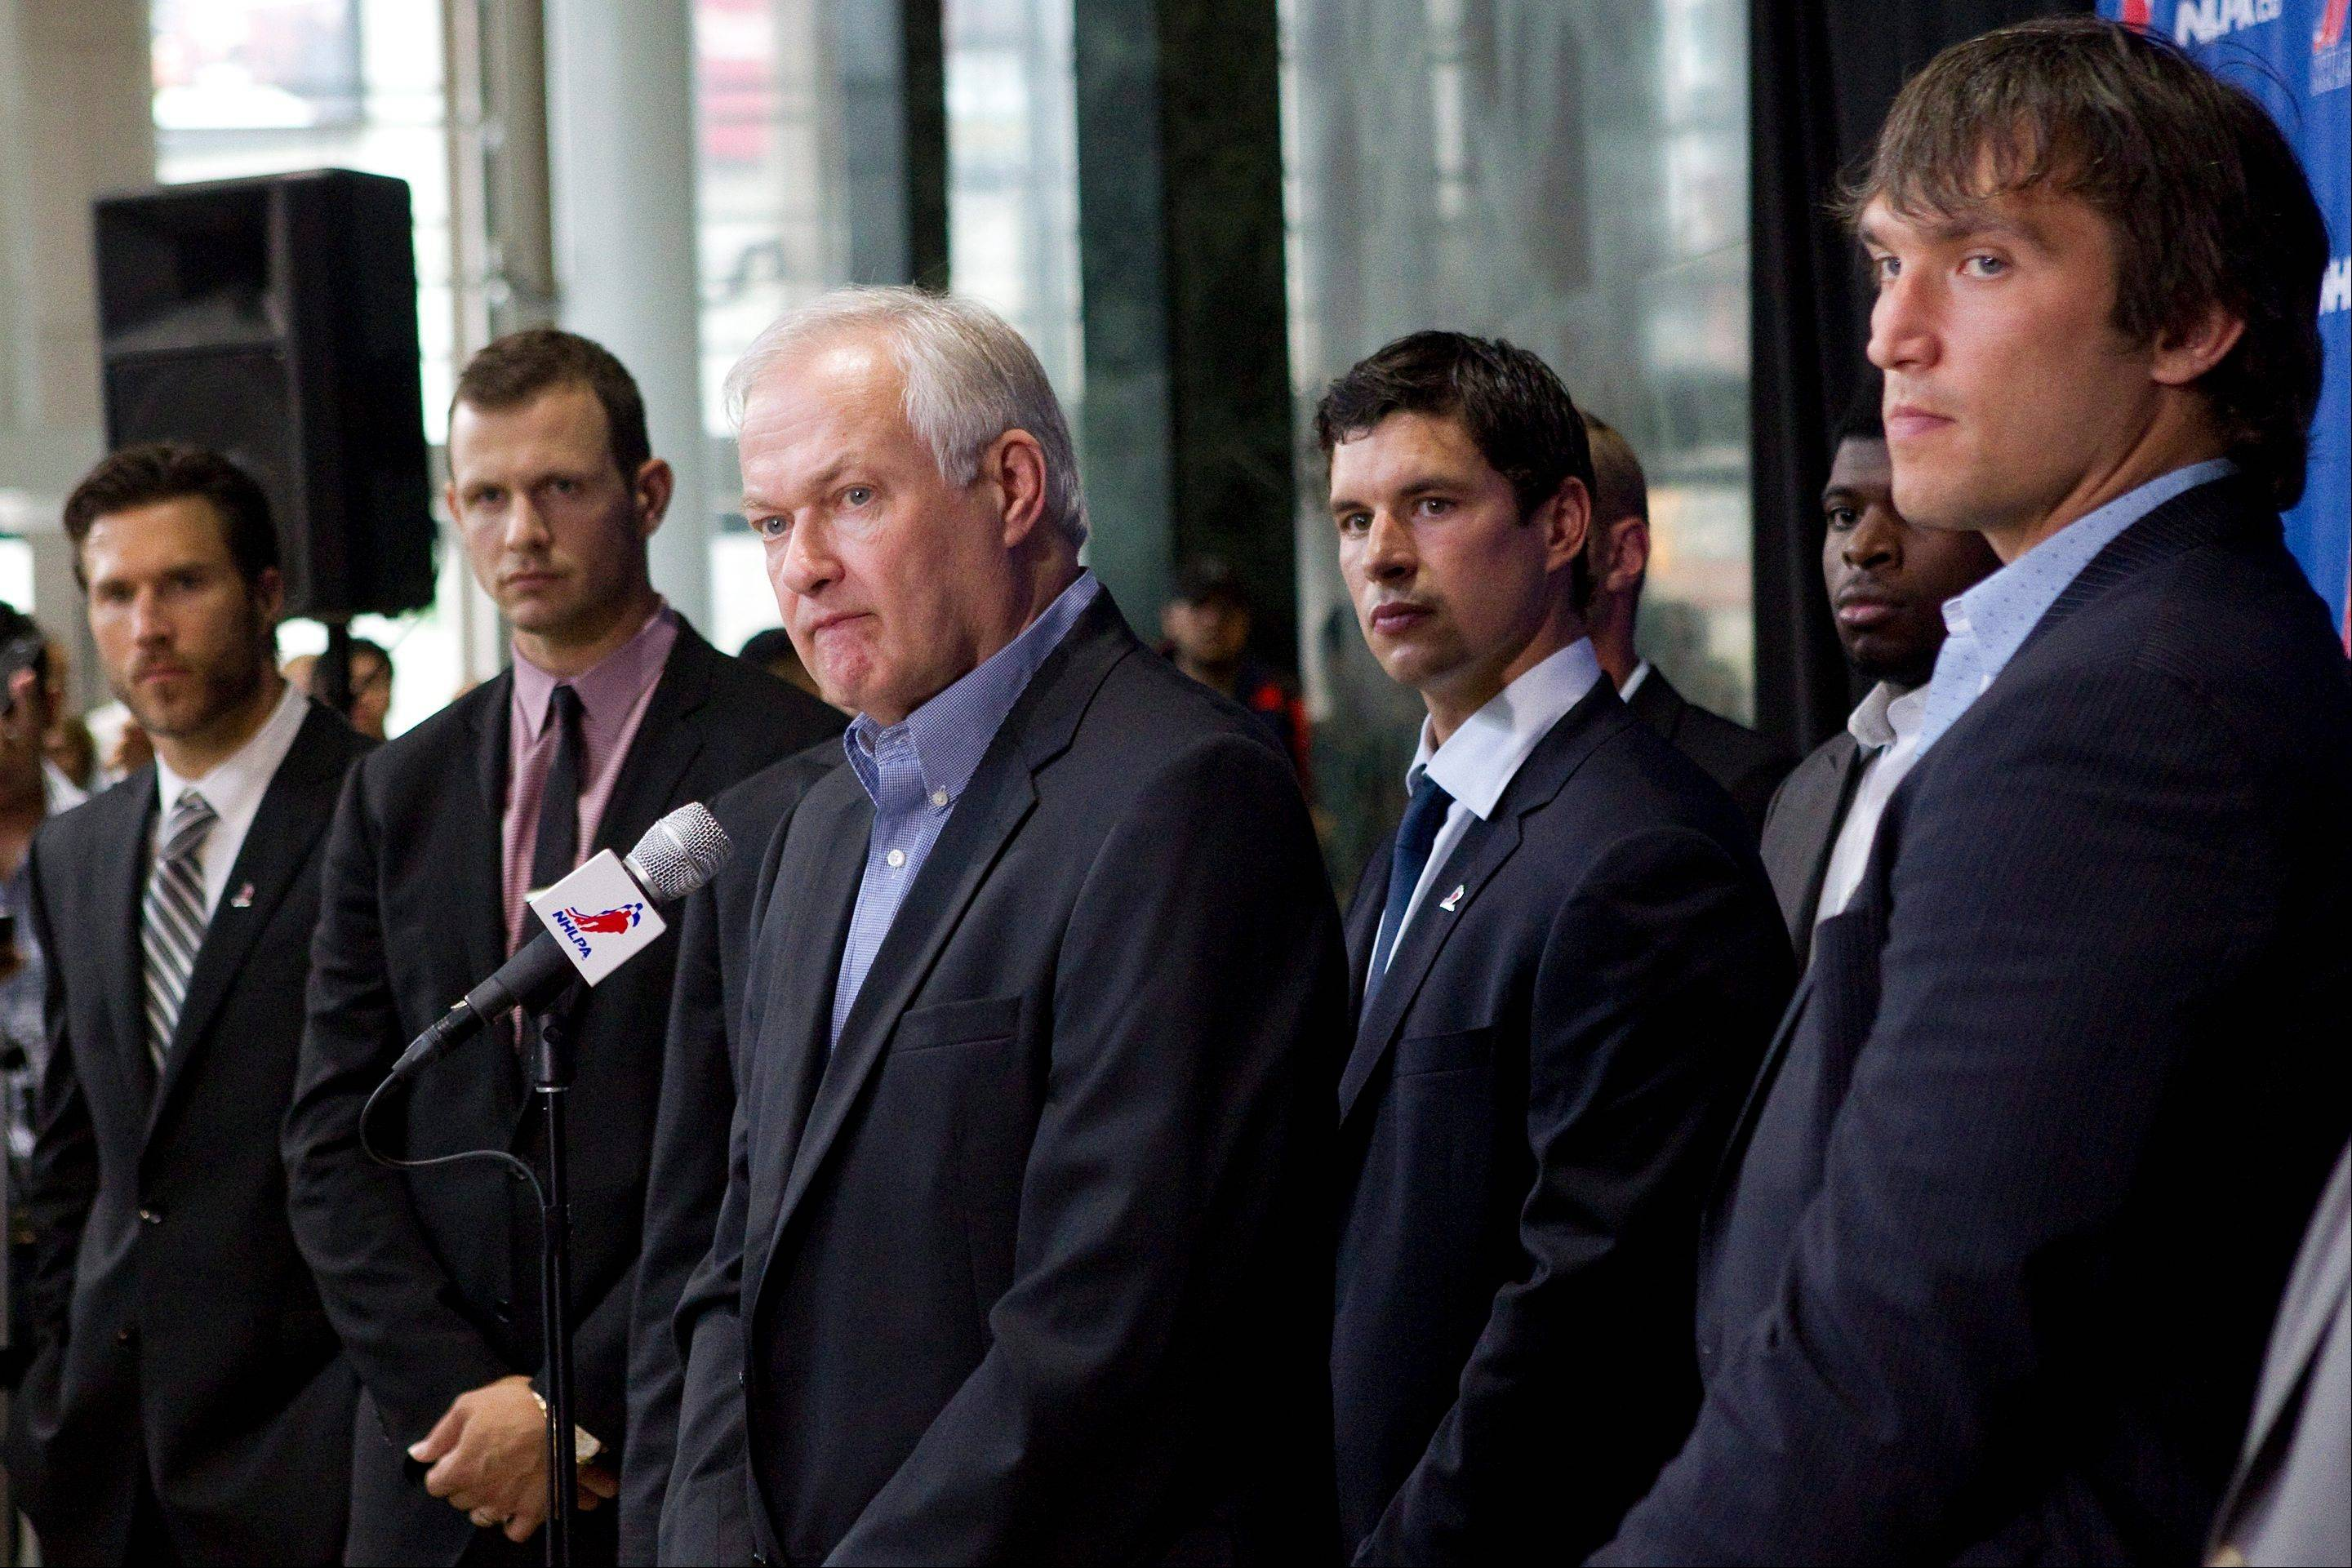 Donald Fehr, center, executive director of the NHL Players� Association, stands with players, from left, the Blackhawks� Steve Montador, the Ottawa Senators� Jason Spezza, the Pittsburgh Penguins� Sidney Crosby and the Washington Capitals� Alex Ovechkin as he speaks to reporters following collective bargaining talks in Toronto.